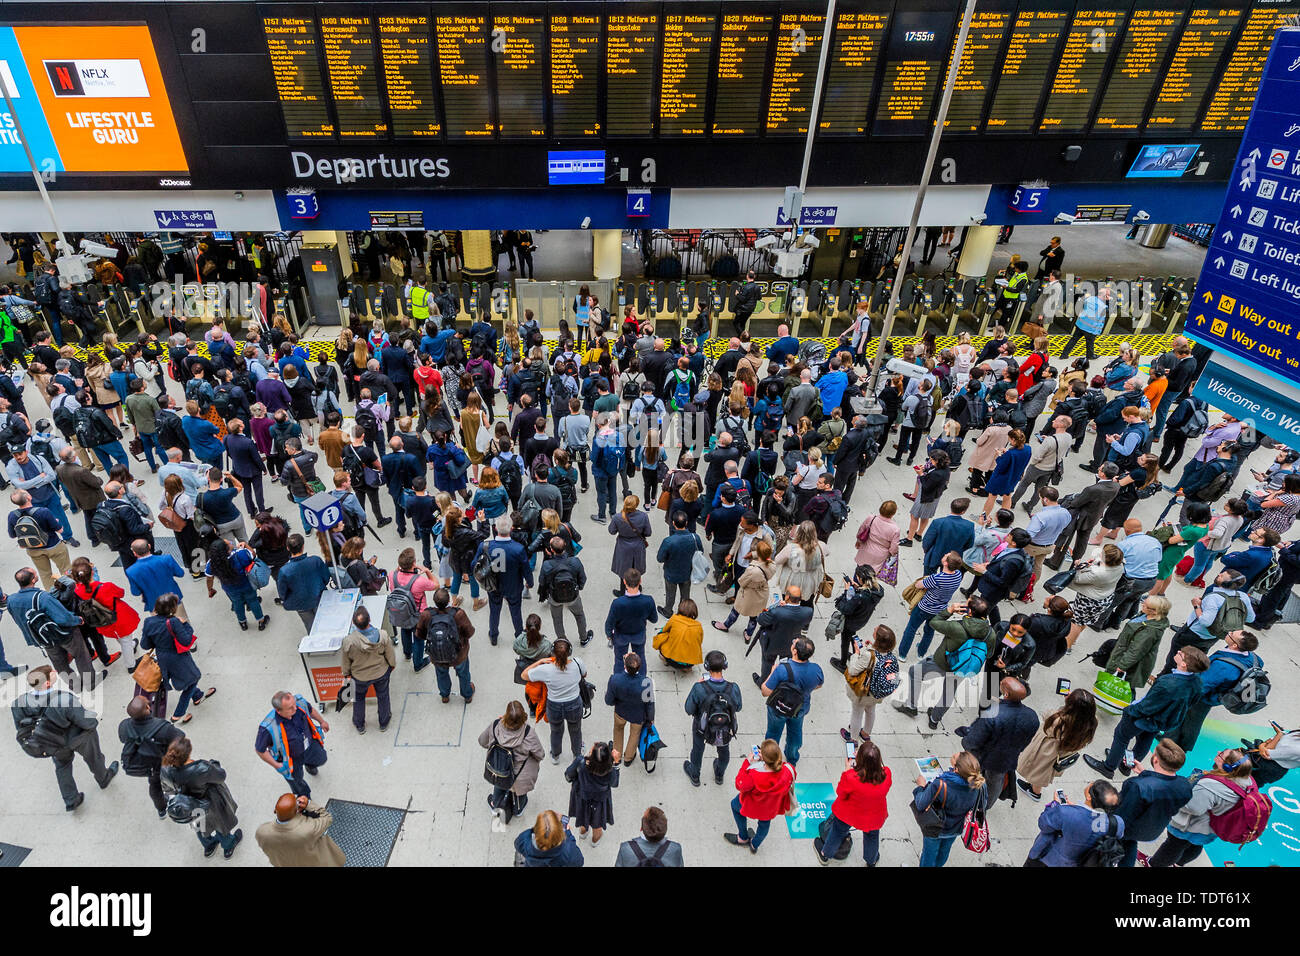 London, UK. 18th June, 2019. Crowds build up due to a reduced service because of the strike by RMT staff on SW Railway Trains, and are heaviest at the suburban commuter end of the concourse. Passengers wait for news of their trains on the concourse of Waterloo Station, London. Credit: Guy Bell/Alamy Live News - Stock Image